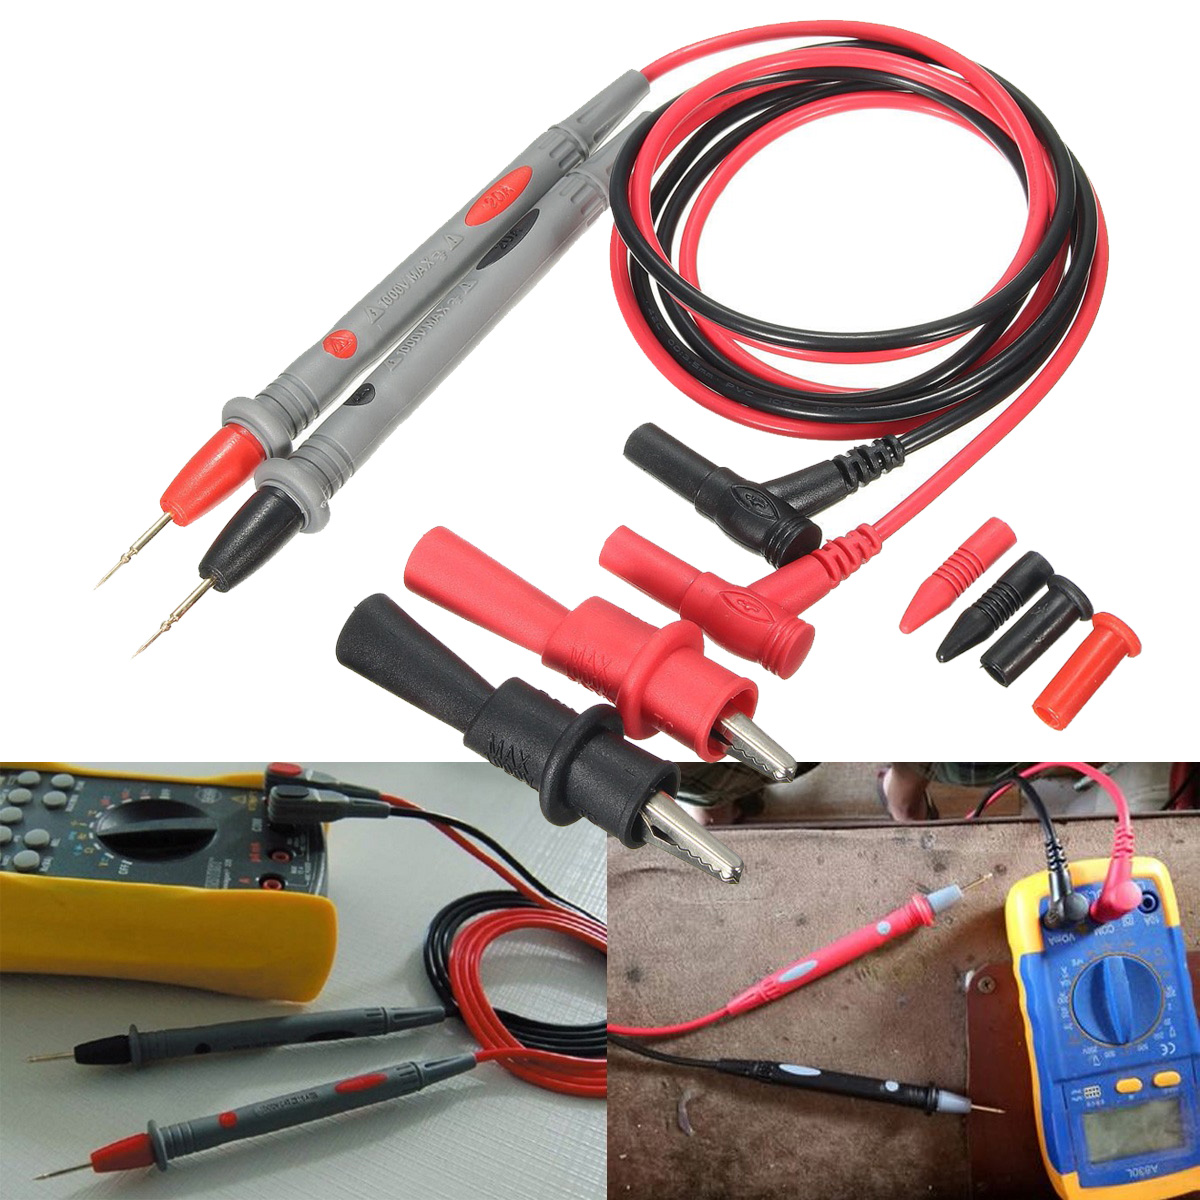 2PCS 1000V 20A Probe Test Lead Test Equipment & Alloy Alligator Clips Clamp Cable Use for Multi Meter Digital Multimeter Test